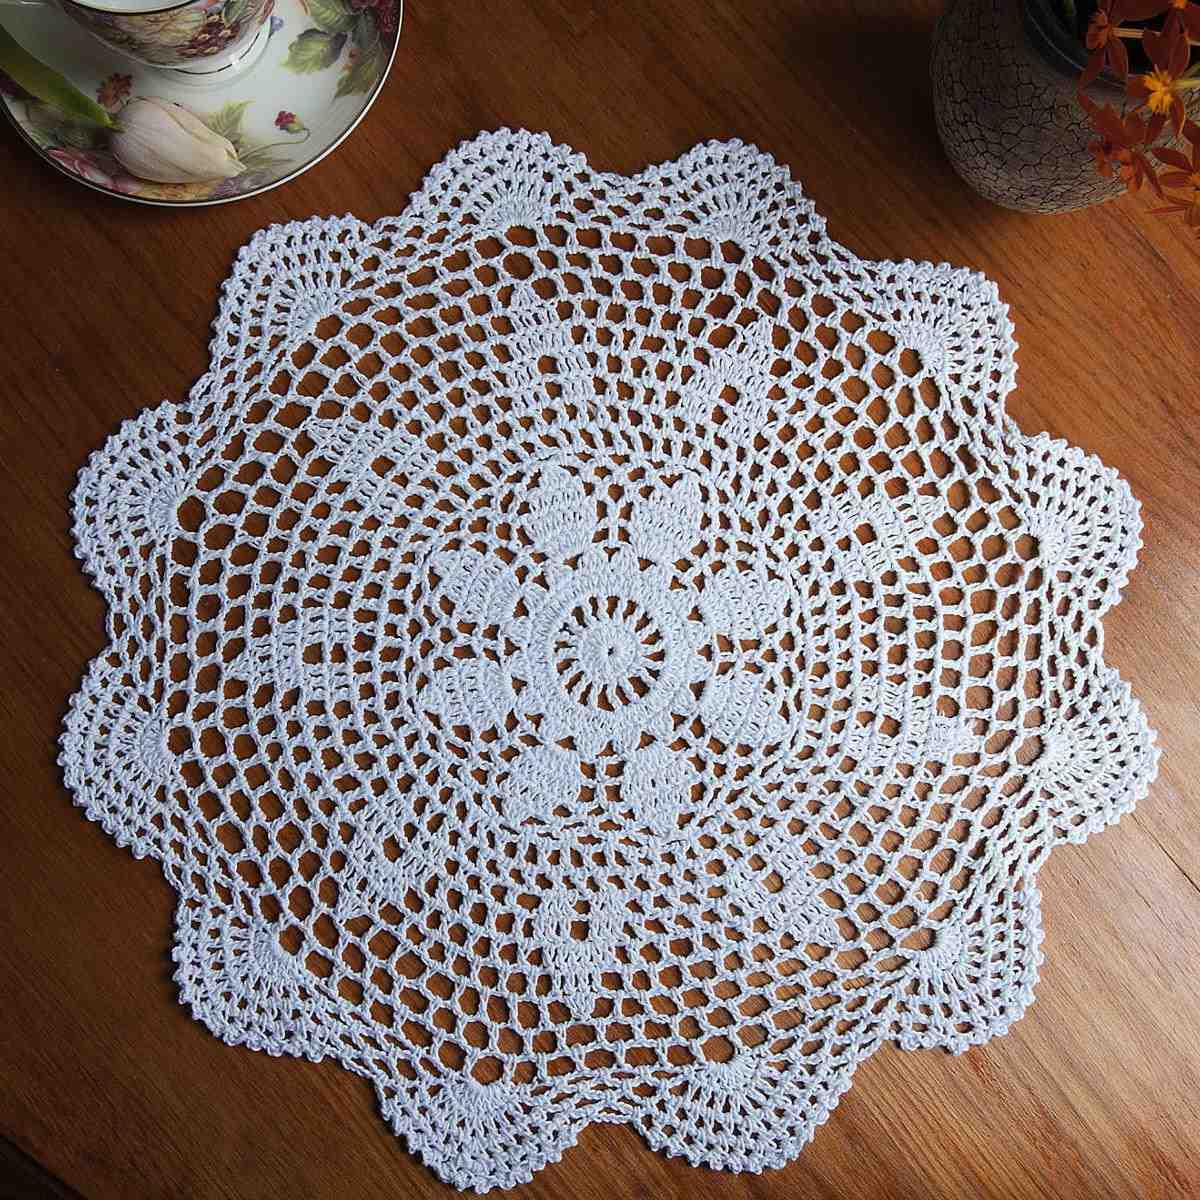 Round White Lace Crochet Doily Dinnerware Placemat Vintage Flower Coasters Household Kitchen Dining Table Decoration 37CM(China (Mainland))